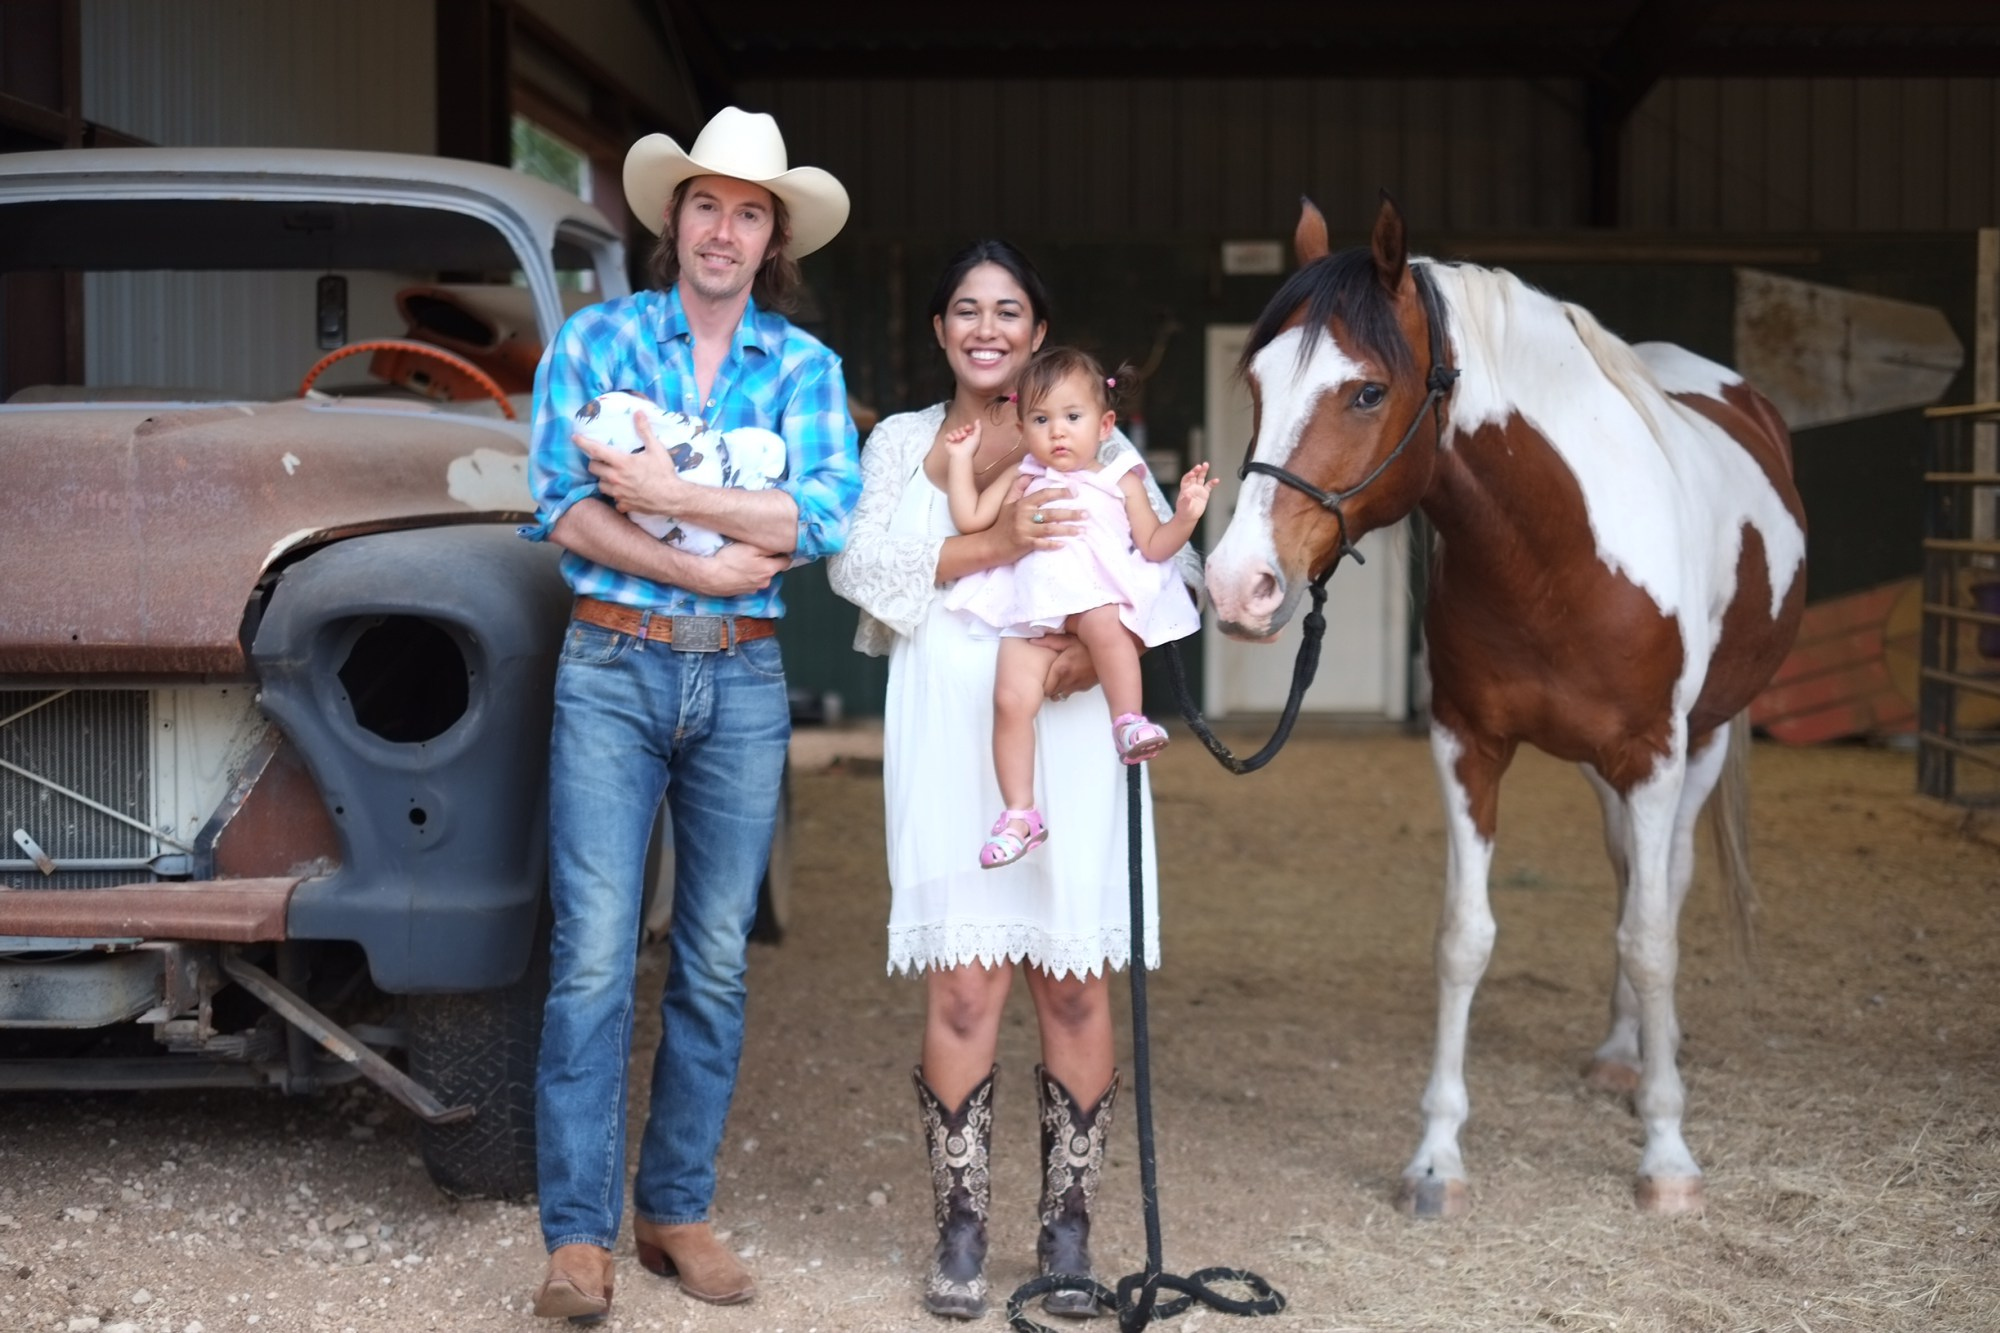 Midland's Jess Carson and Wife Camille Welcome Baby Boy